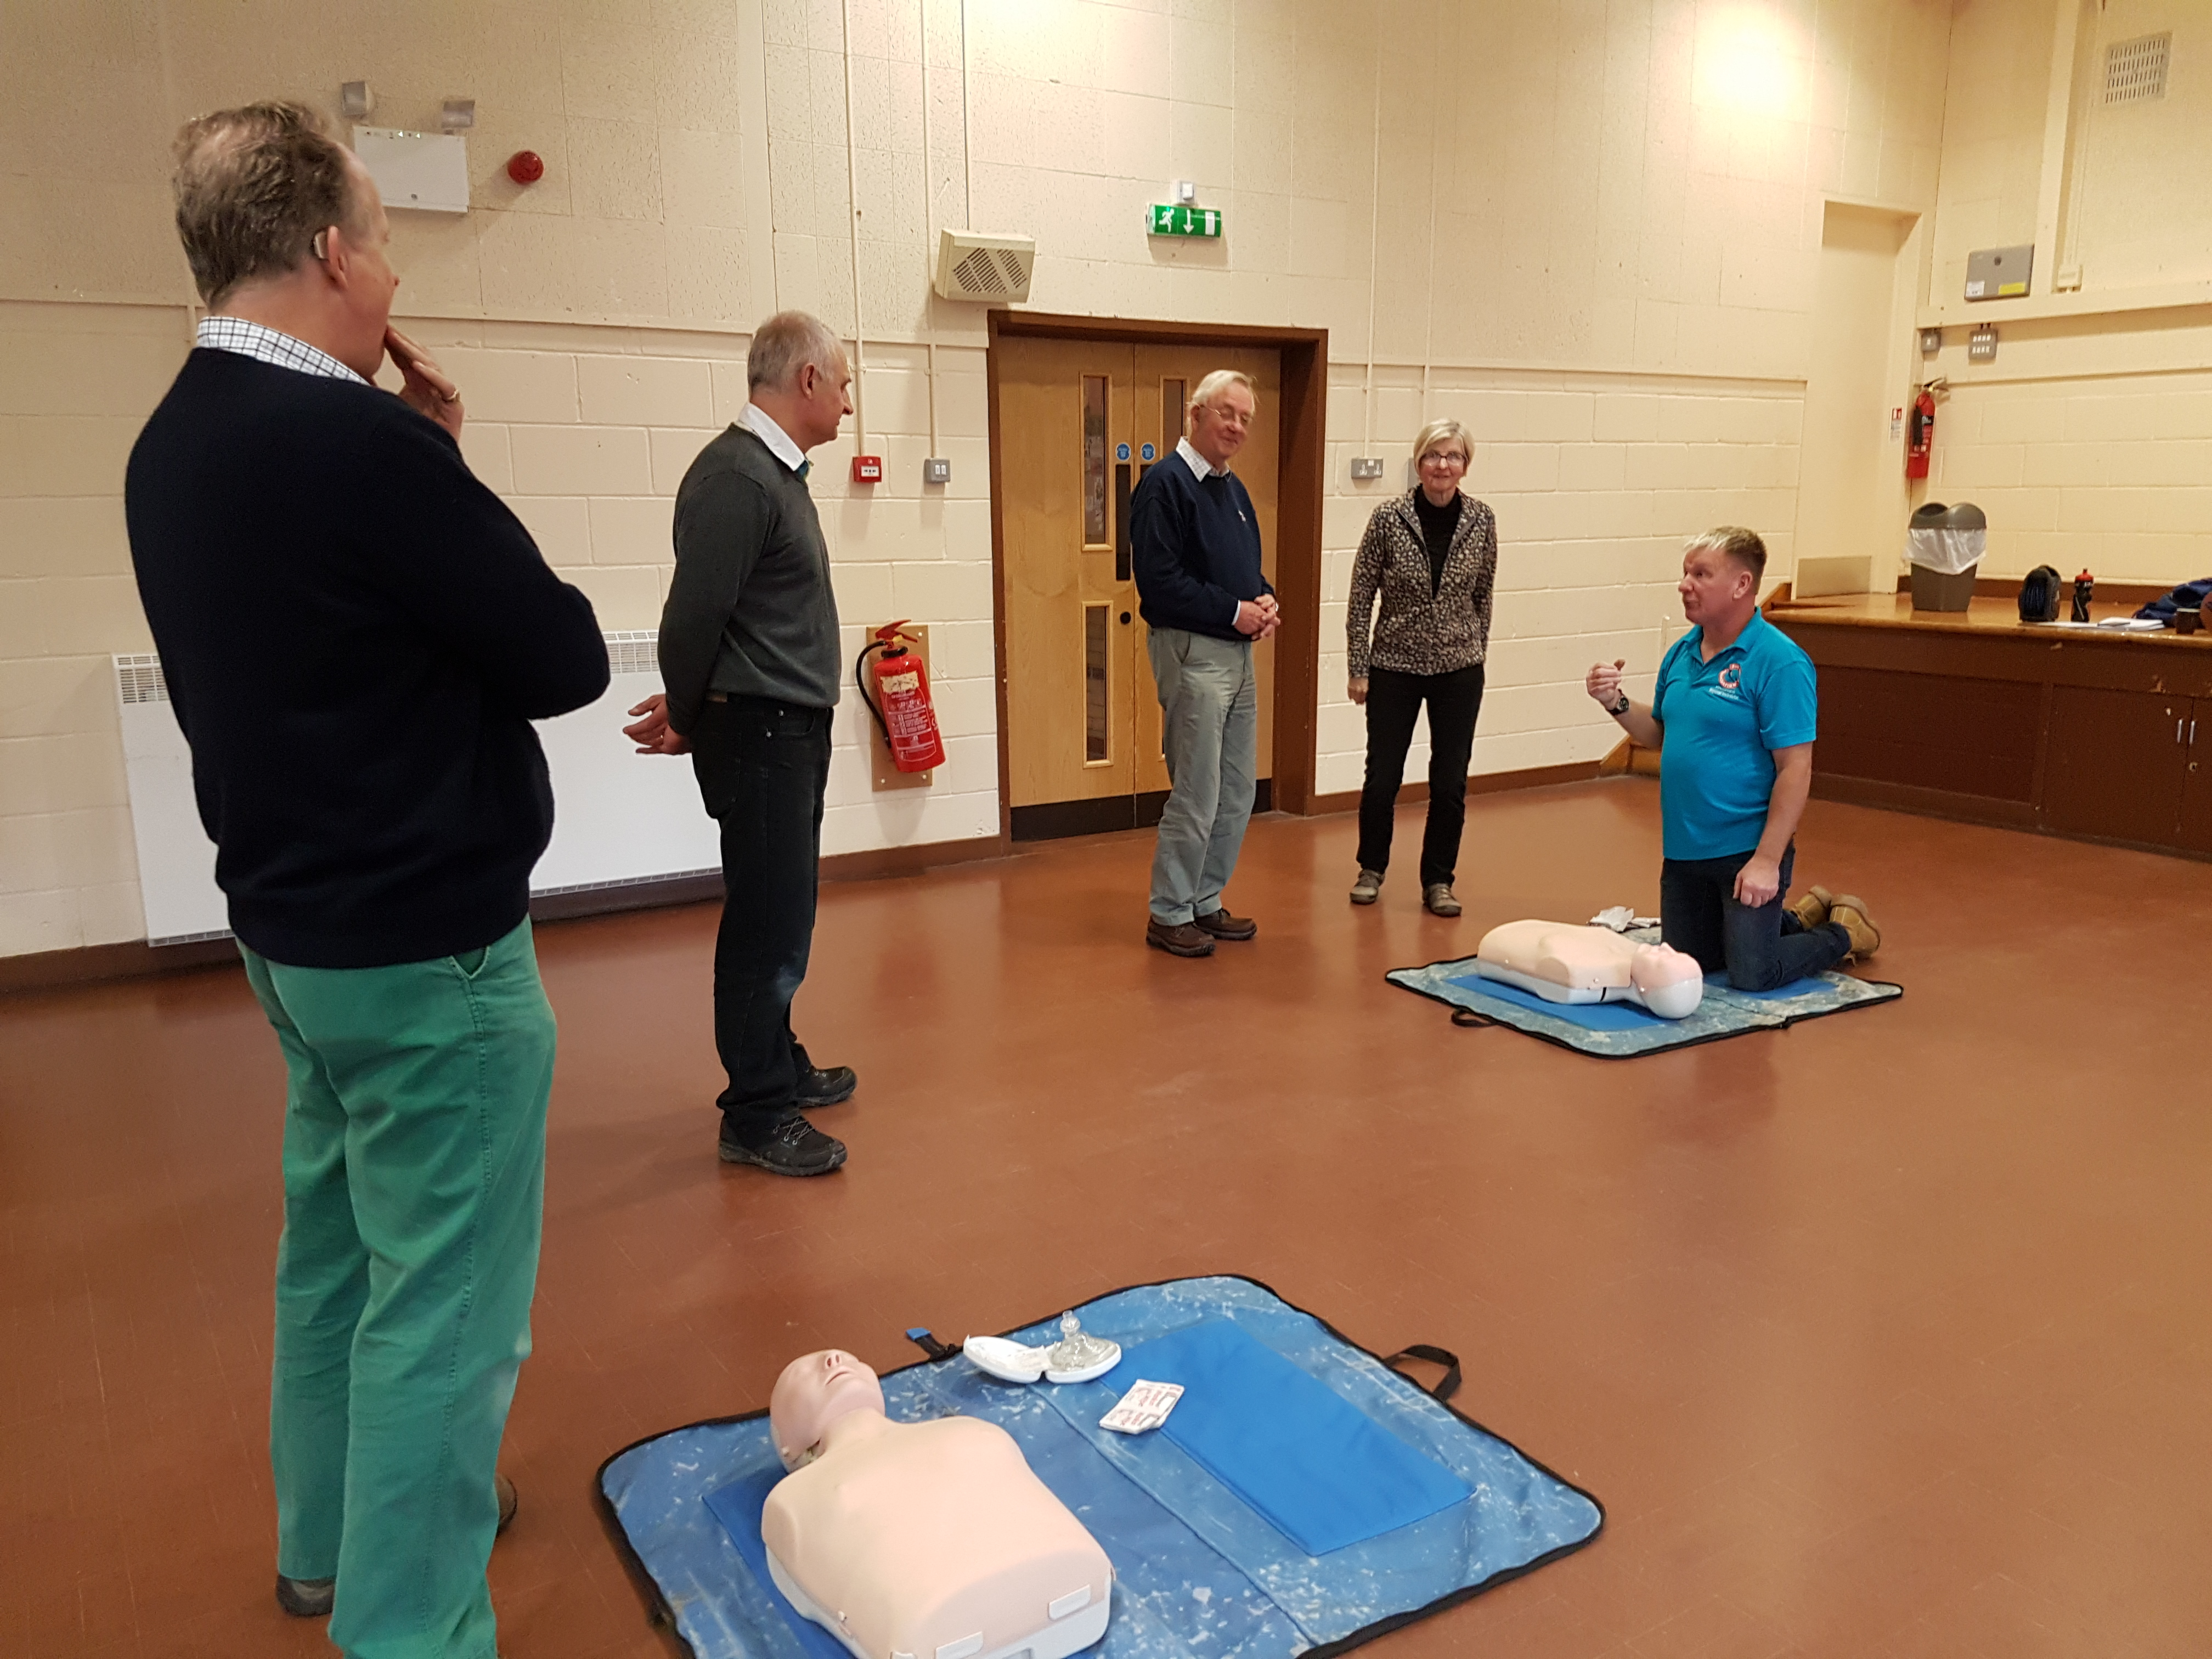 CPR demonstration - Oxygen Admin and First Aid course Nov 2018